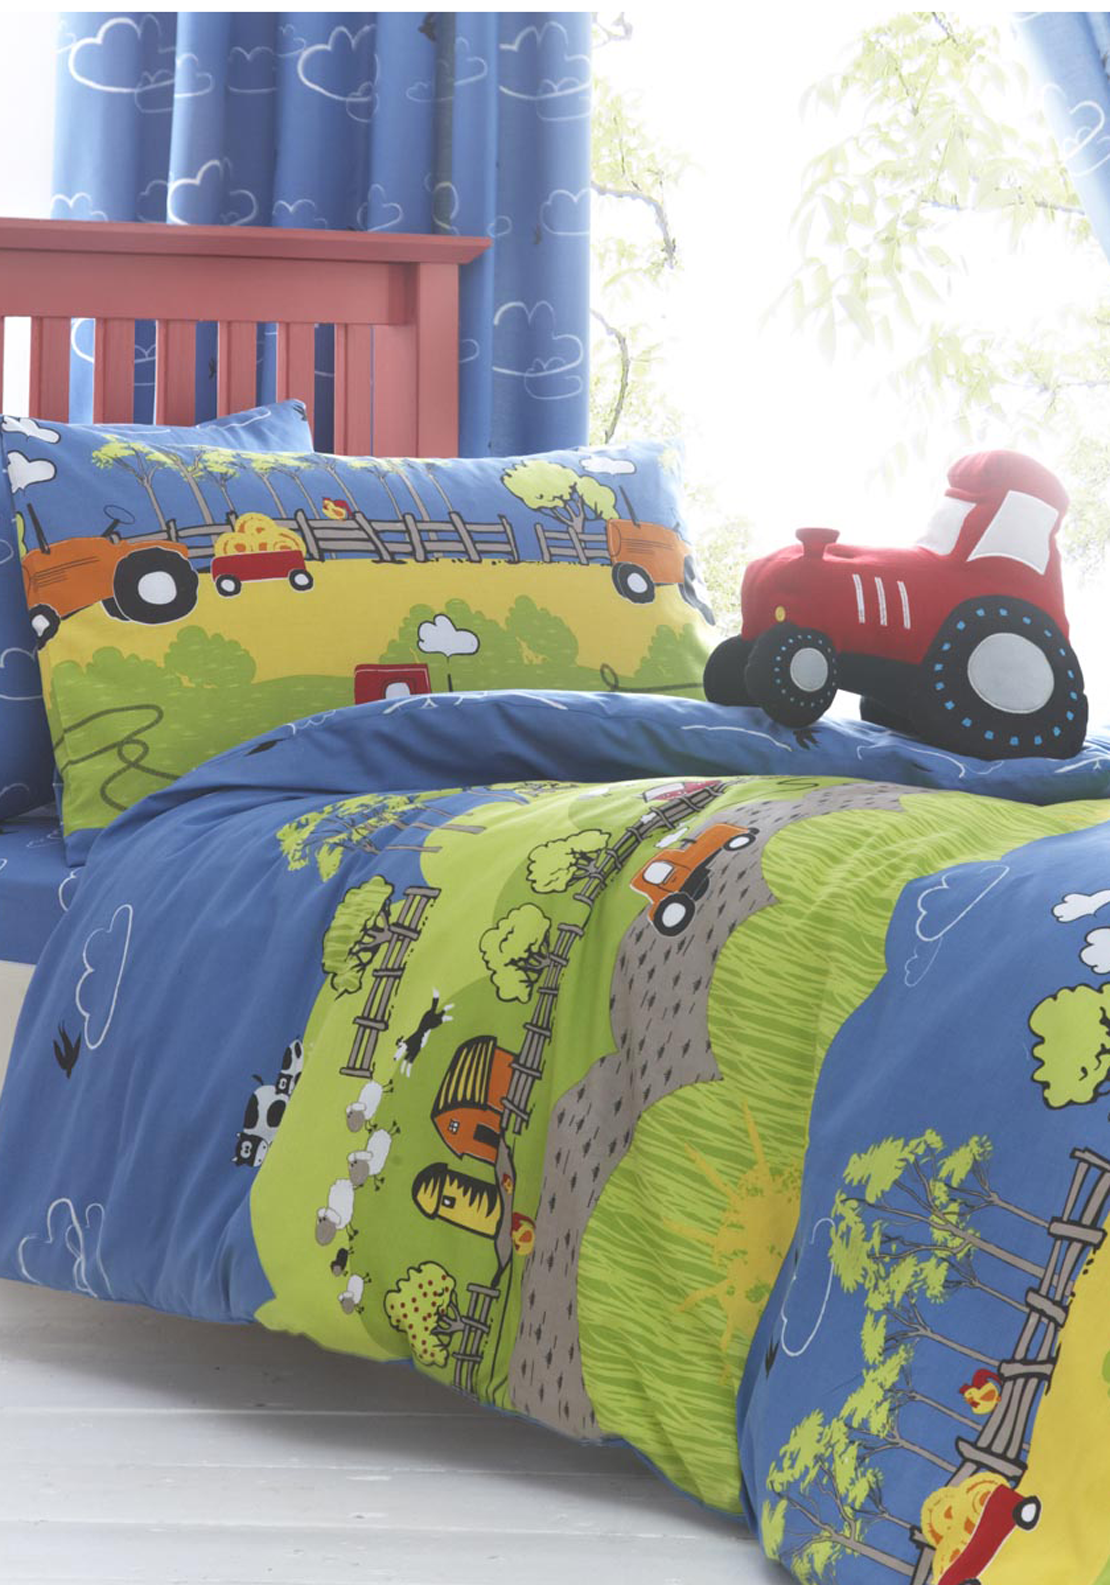 Just Kidding Farm Print Duvet Cover and Pillowcase Set, Blue